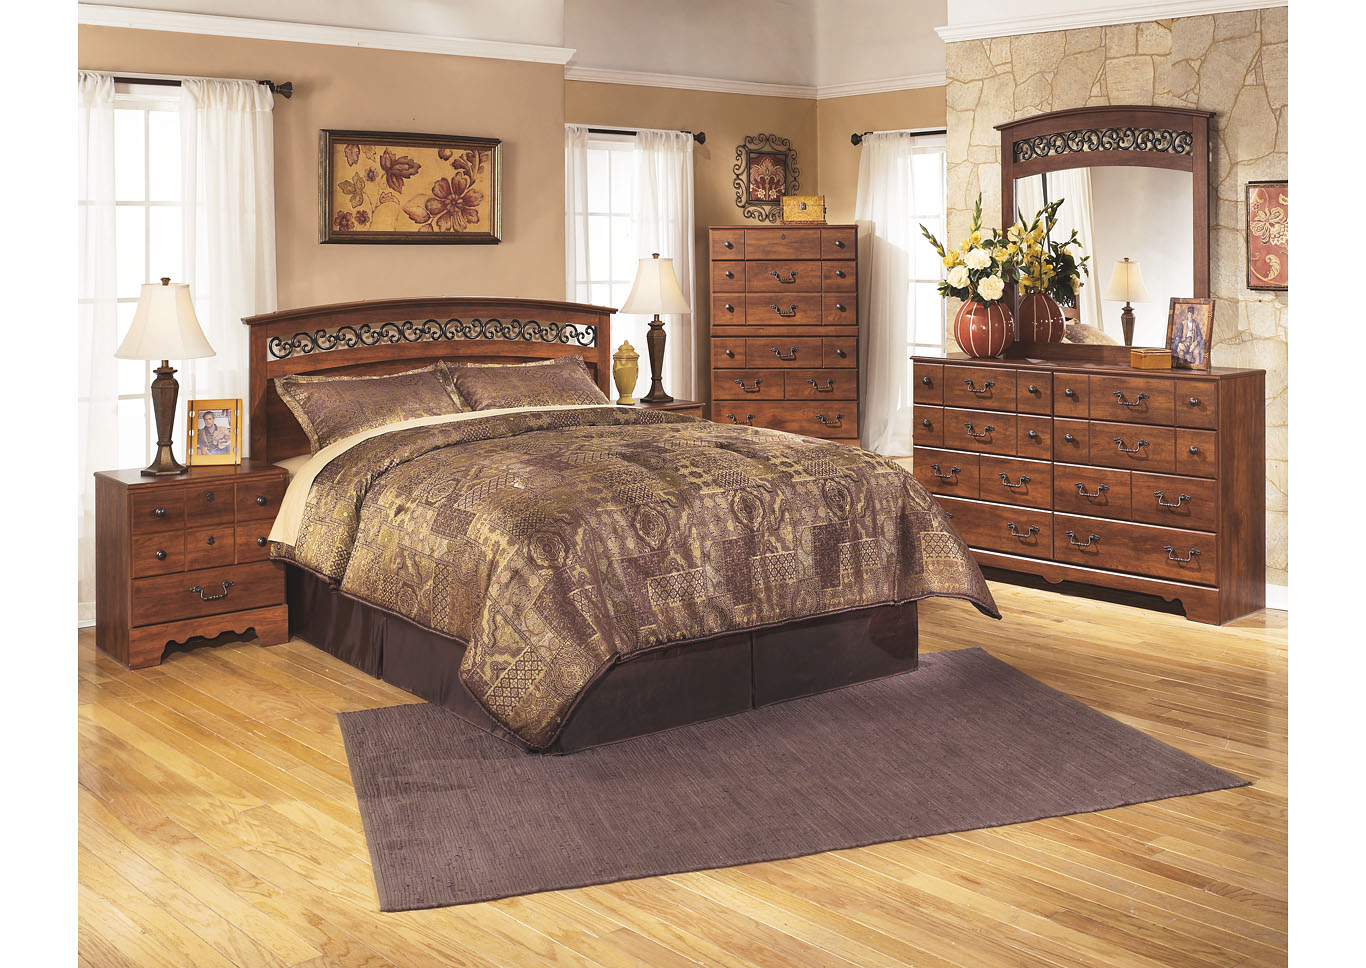 Harlem Furniture Timberline Queen Full Panel Headboard